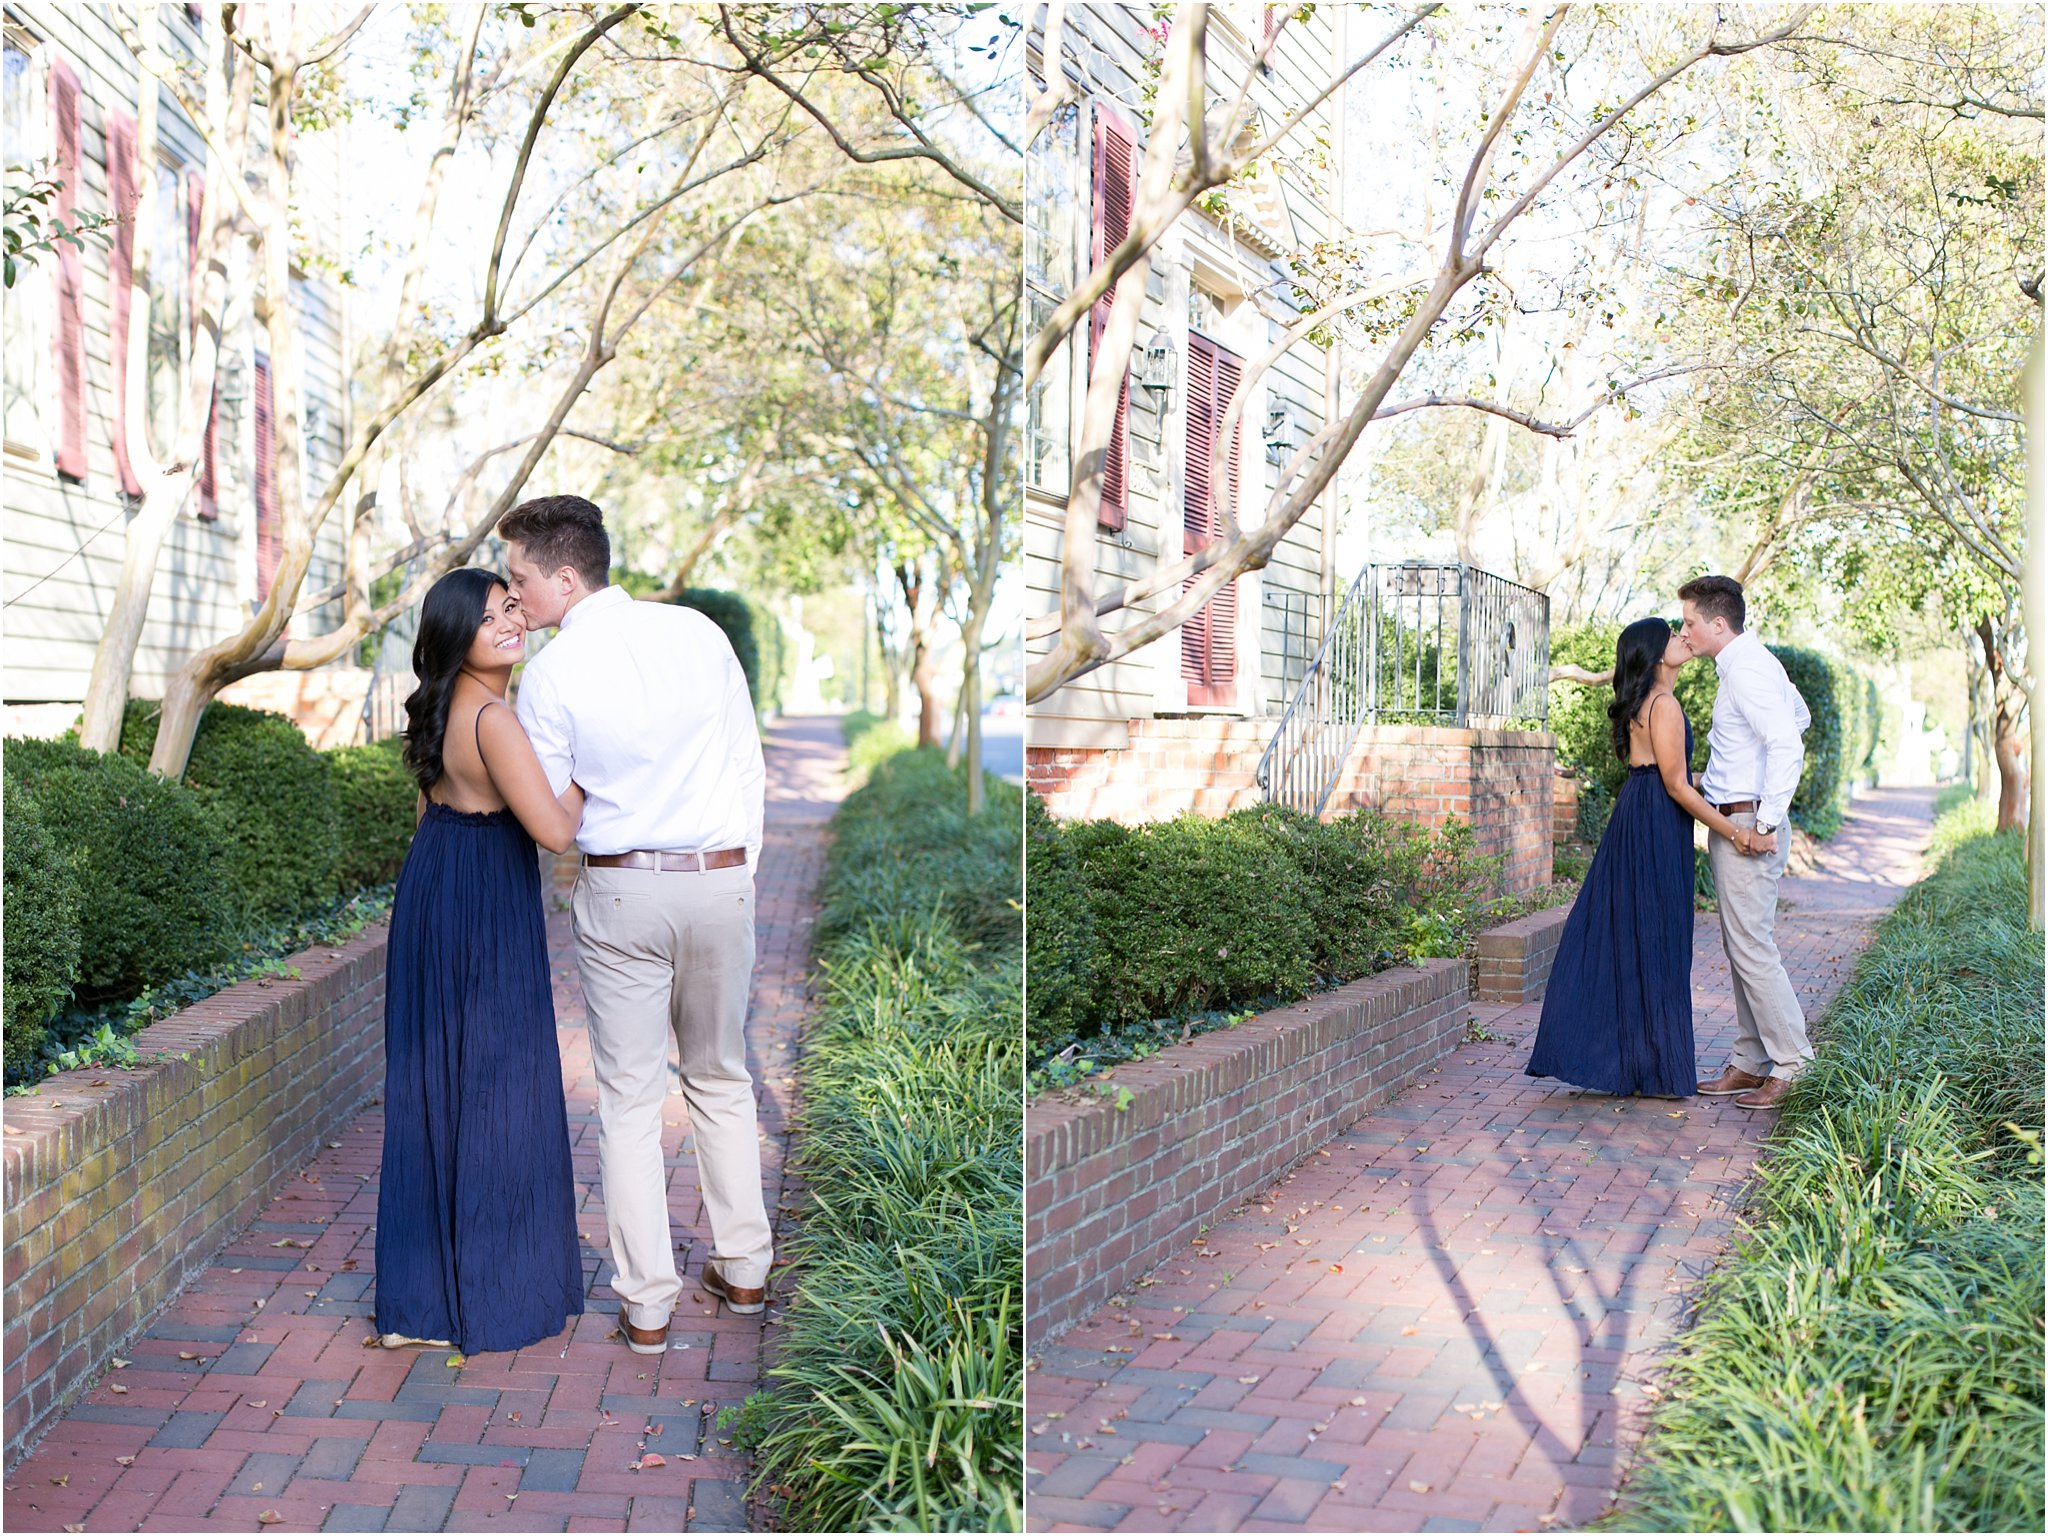 jessica_ryan_photography_virginia_smithfield_historical_downtown_engagement_portraits_candid_authentic_3707